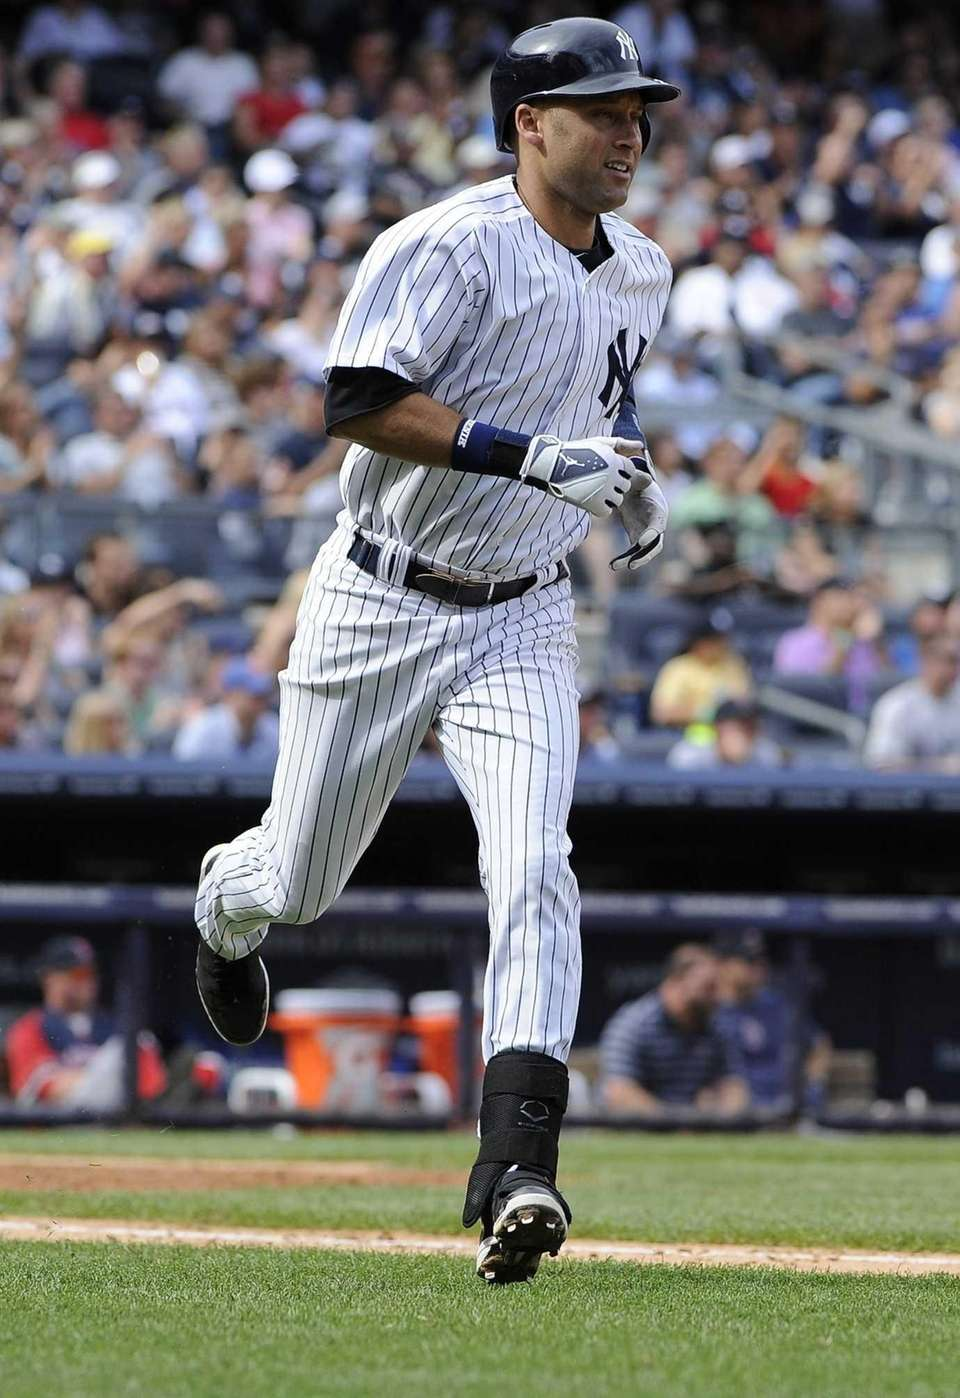 3,316: Derek Jeter's career hits, most among active